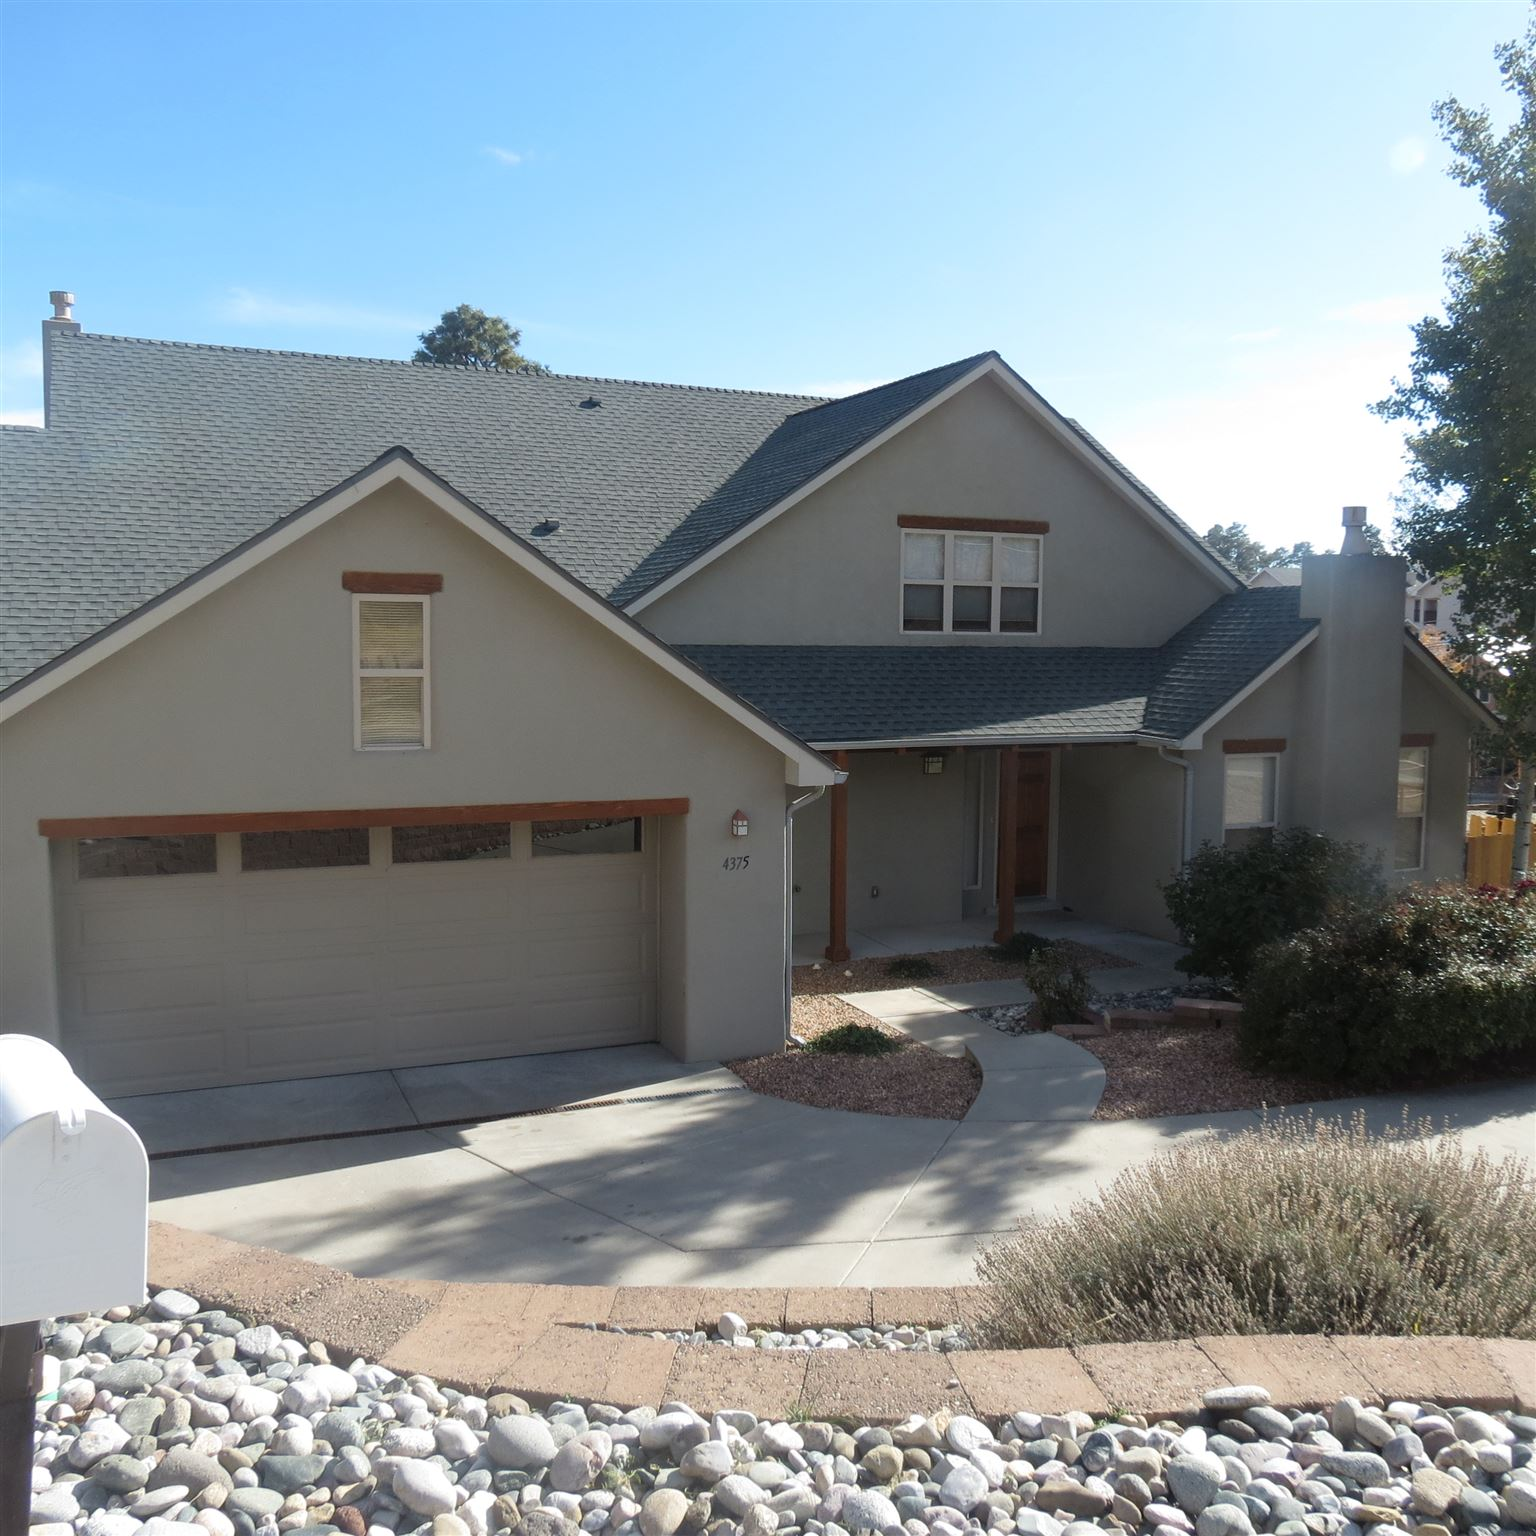 Custom home built in 2004 situated at the end of Arizona Avenue, across from the Mitchell Trailhead and next to Fireman's Park.  The stucco is newer and the roof was replaced in 2018.  Fenced backyard with shrubs, trees and sod.  Larger uncovered patio along with smaller covered patio that provide views of LA Mountain (practically in your backyard!). Front yard is landscaped.  Oversized 2 car garage with heated workshop space.  Inside, engineered wood floors throughout the first level.  Estimate to replace kitchen floor is online and posted in the kitchen.  Cathedral ceiling in Great Room w/gas fireplace.  Open floor plan w/large dining area.  Kitchen features cherry cabinets, granite tile counter tops, stainless steel appliances, an island, pantry, and desk.   Laundry Room, full bath and bedroom round out the lower level.  Upstairs all new carpet, Jack-n-Jill bedrooms w/bathroom in between and large master suite with huge bathroom and walk in closet with closet system.  Fresh paint throughout the house.  Light and bright, this house feels good.  Come check it out today.